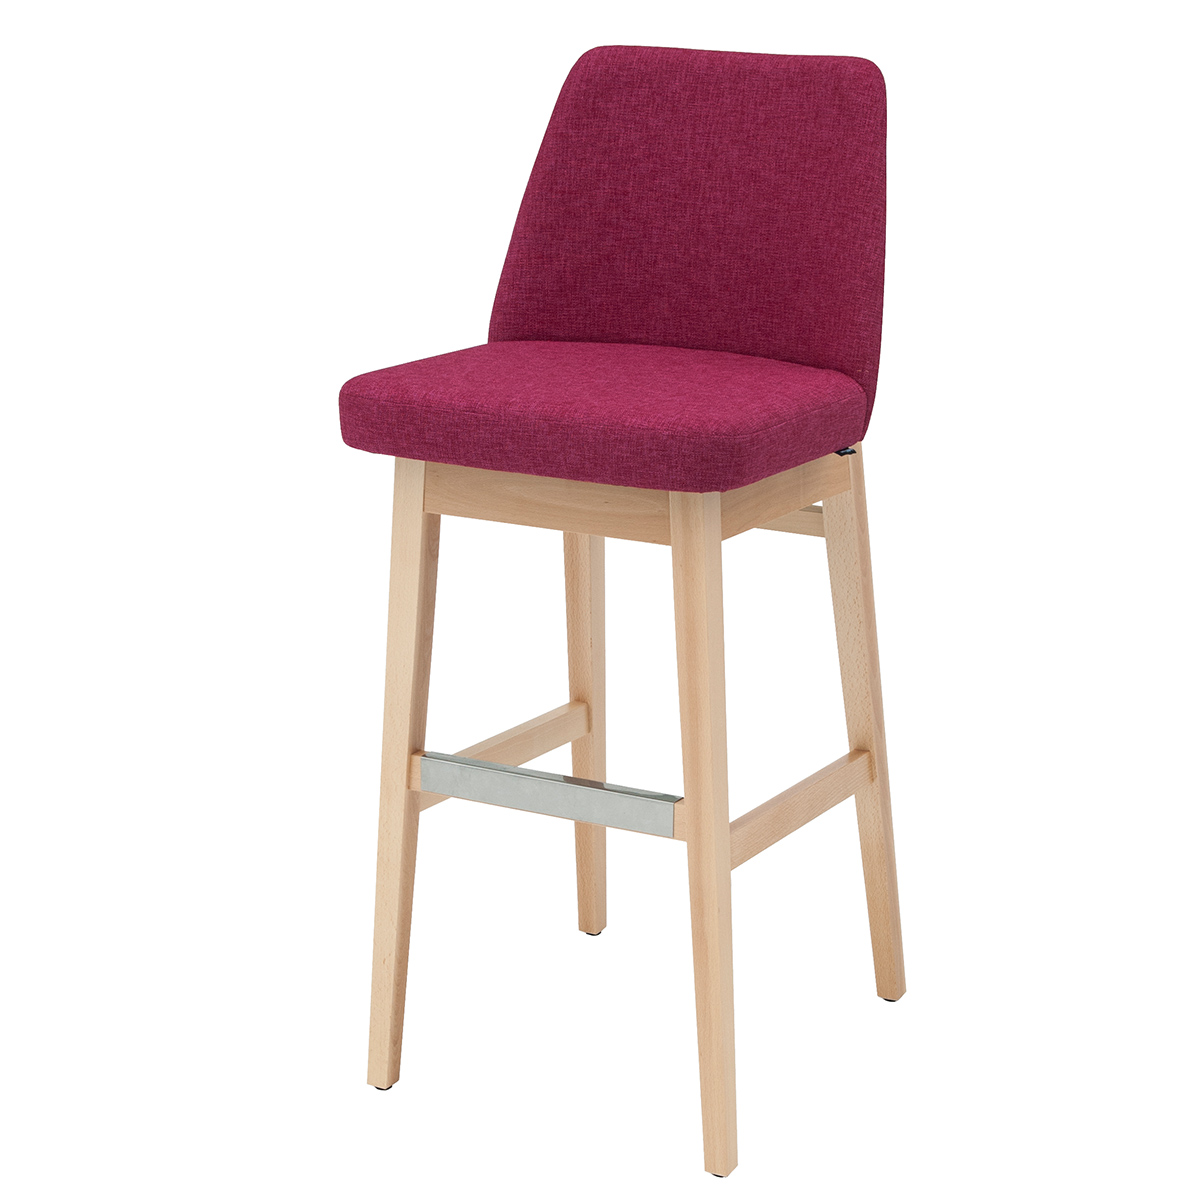 Magnificent Solid Wood Bar Stool Lena B048 Is A Heavy Duty And Elegant Ibusinesslaw Wood Chair Design Ideas Ibusinesslaworg